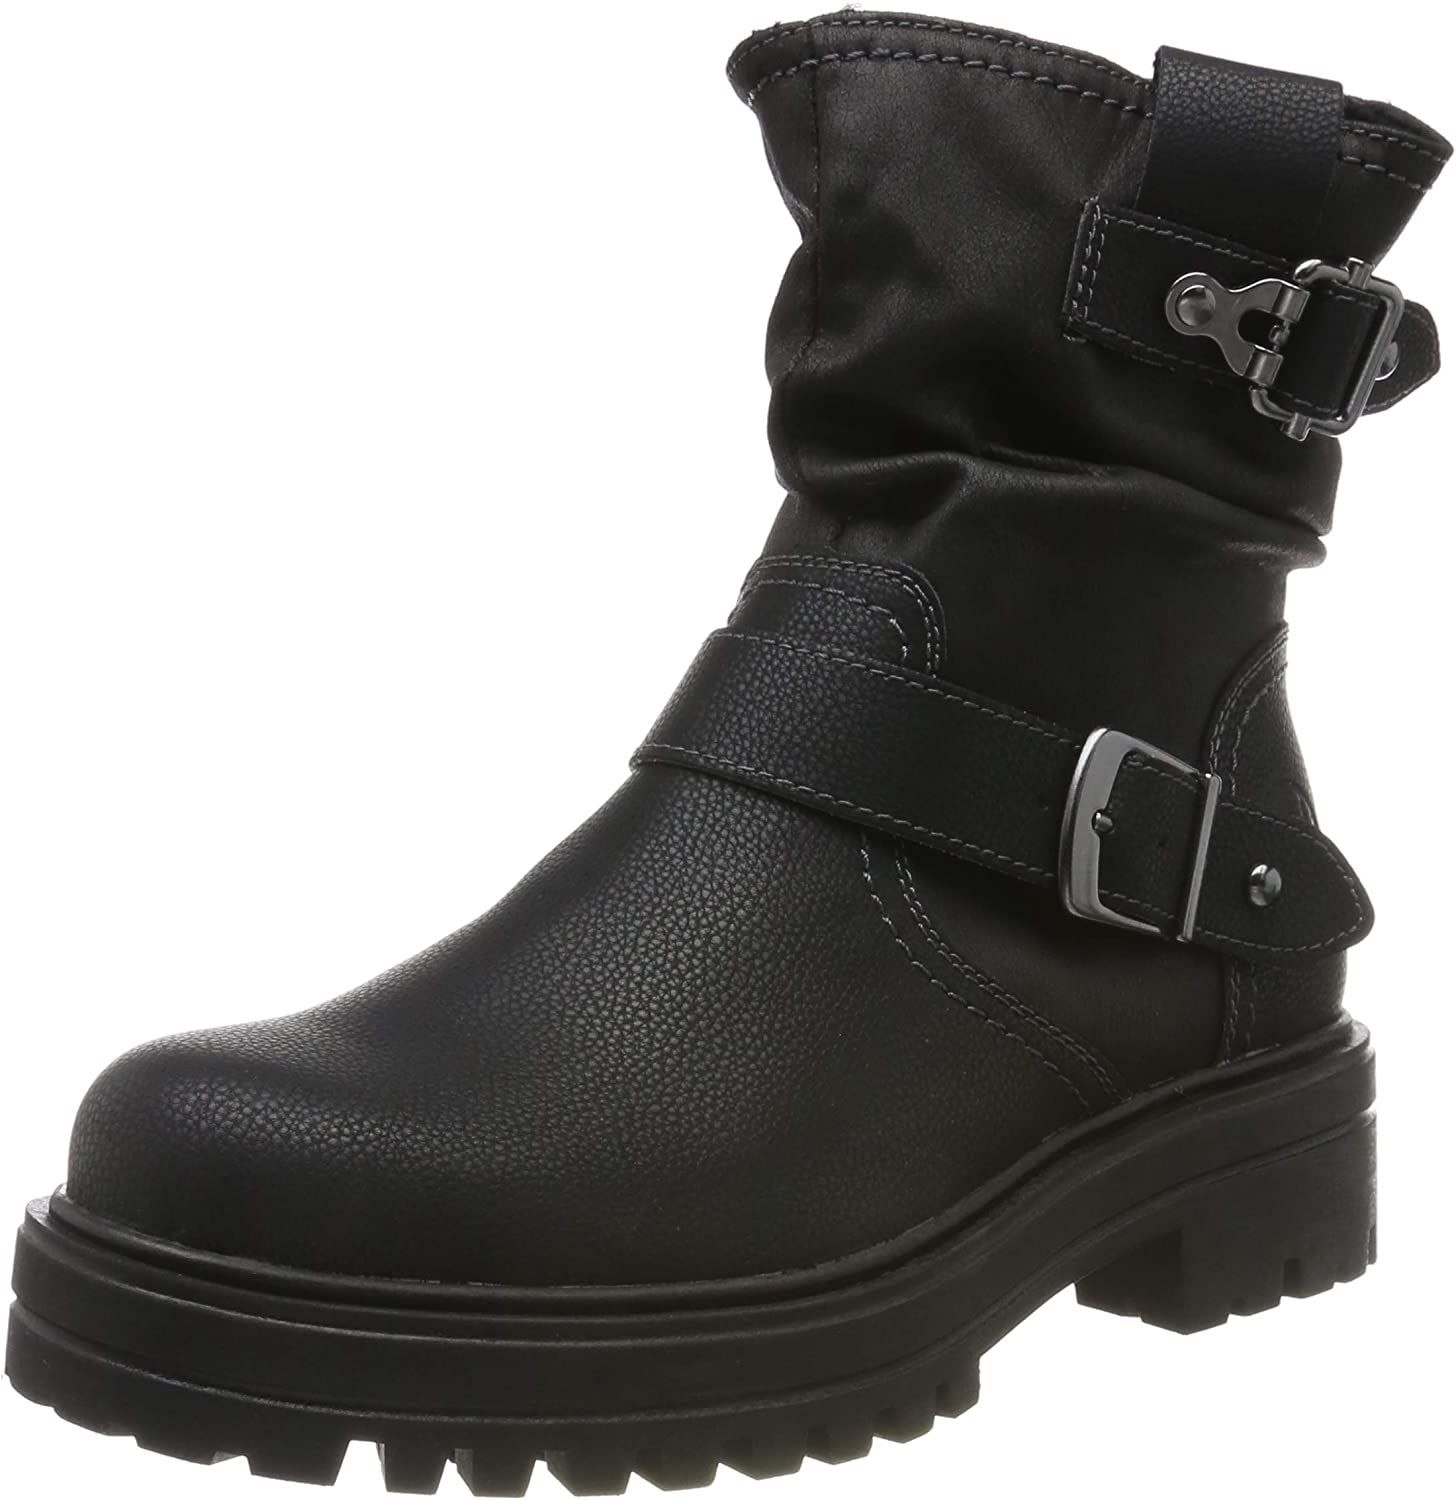 s.Oliver Women's Japan's largest assortment Ankle Now on sale Boots